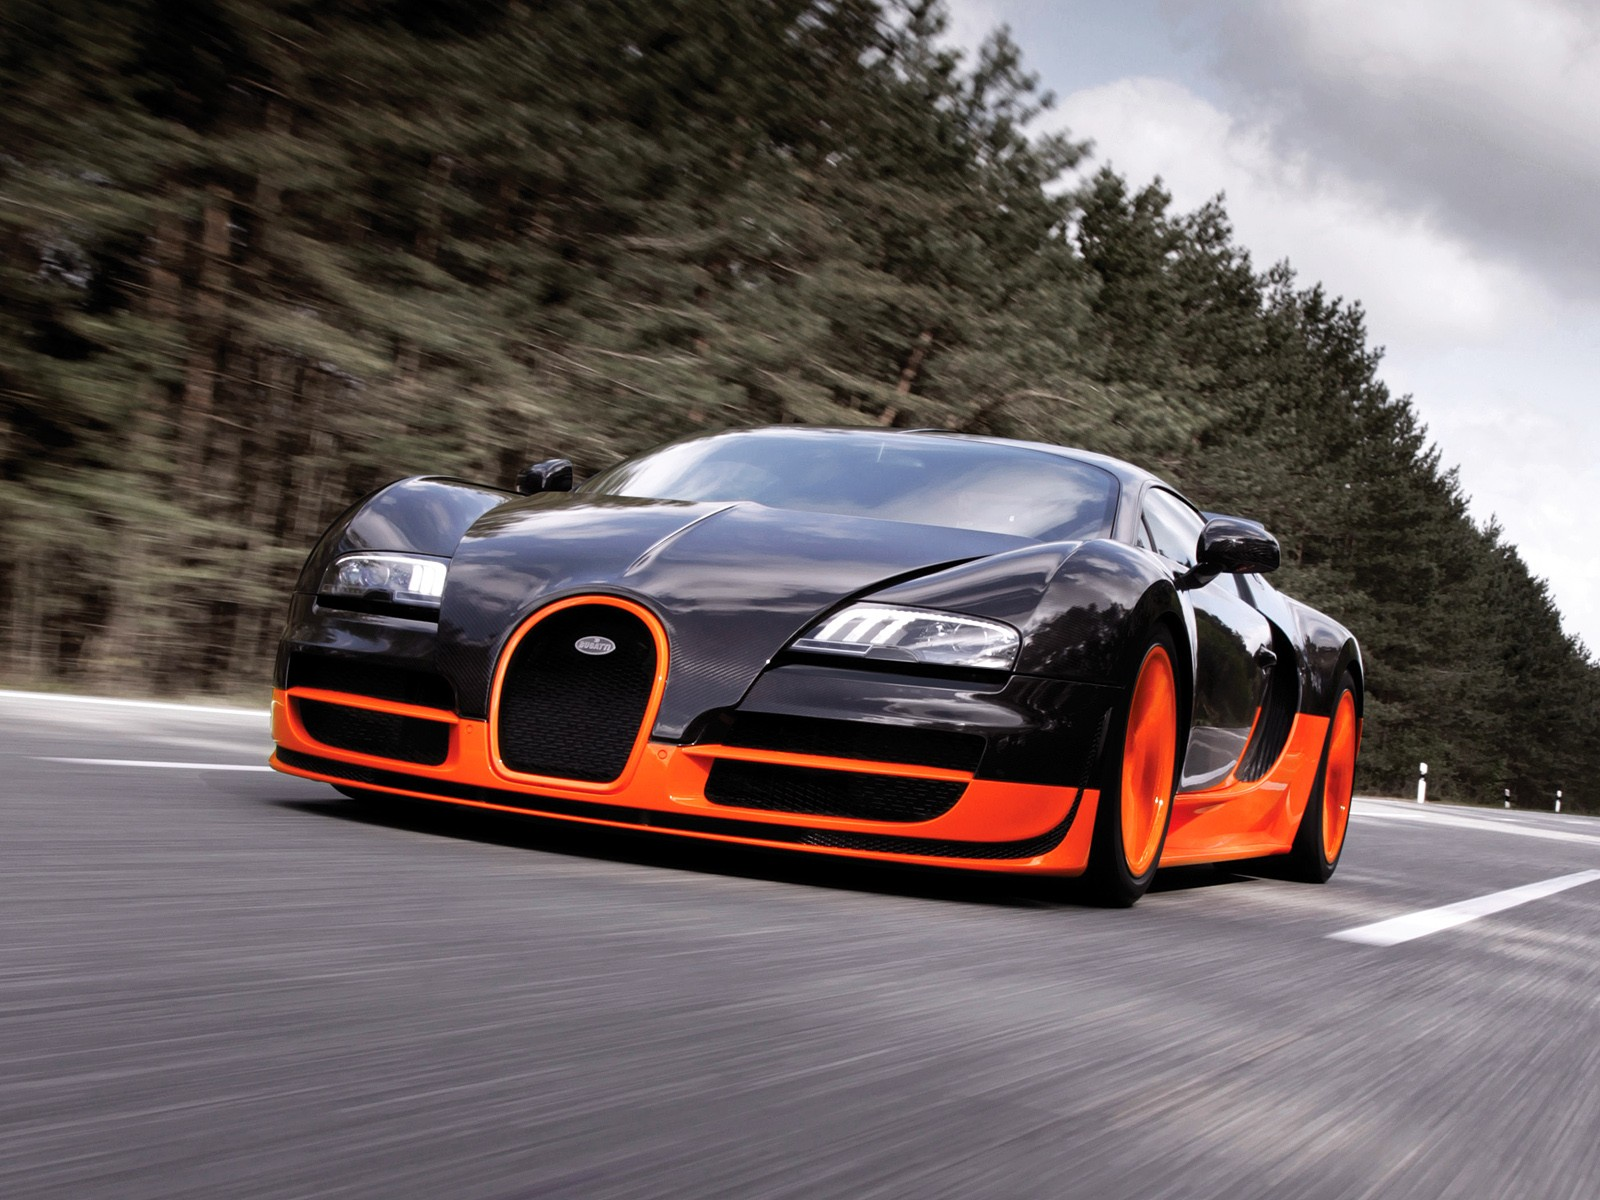 owning a bugatti veyron doesn't come cheap, here's how much it